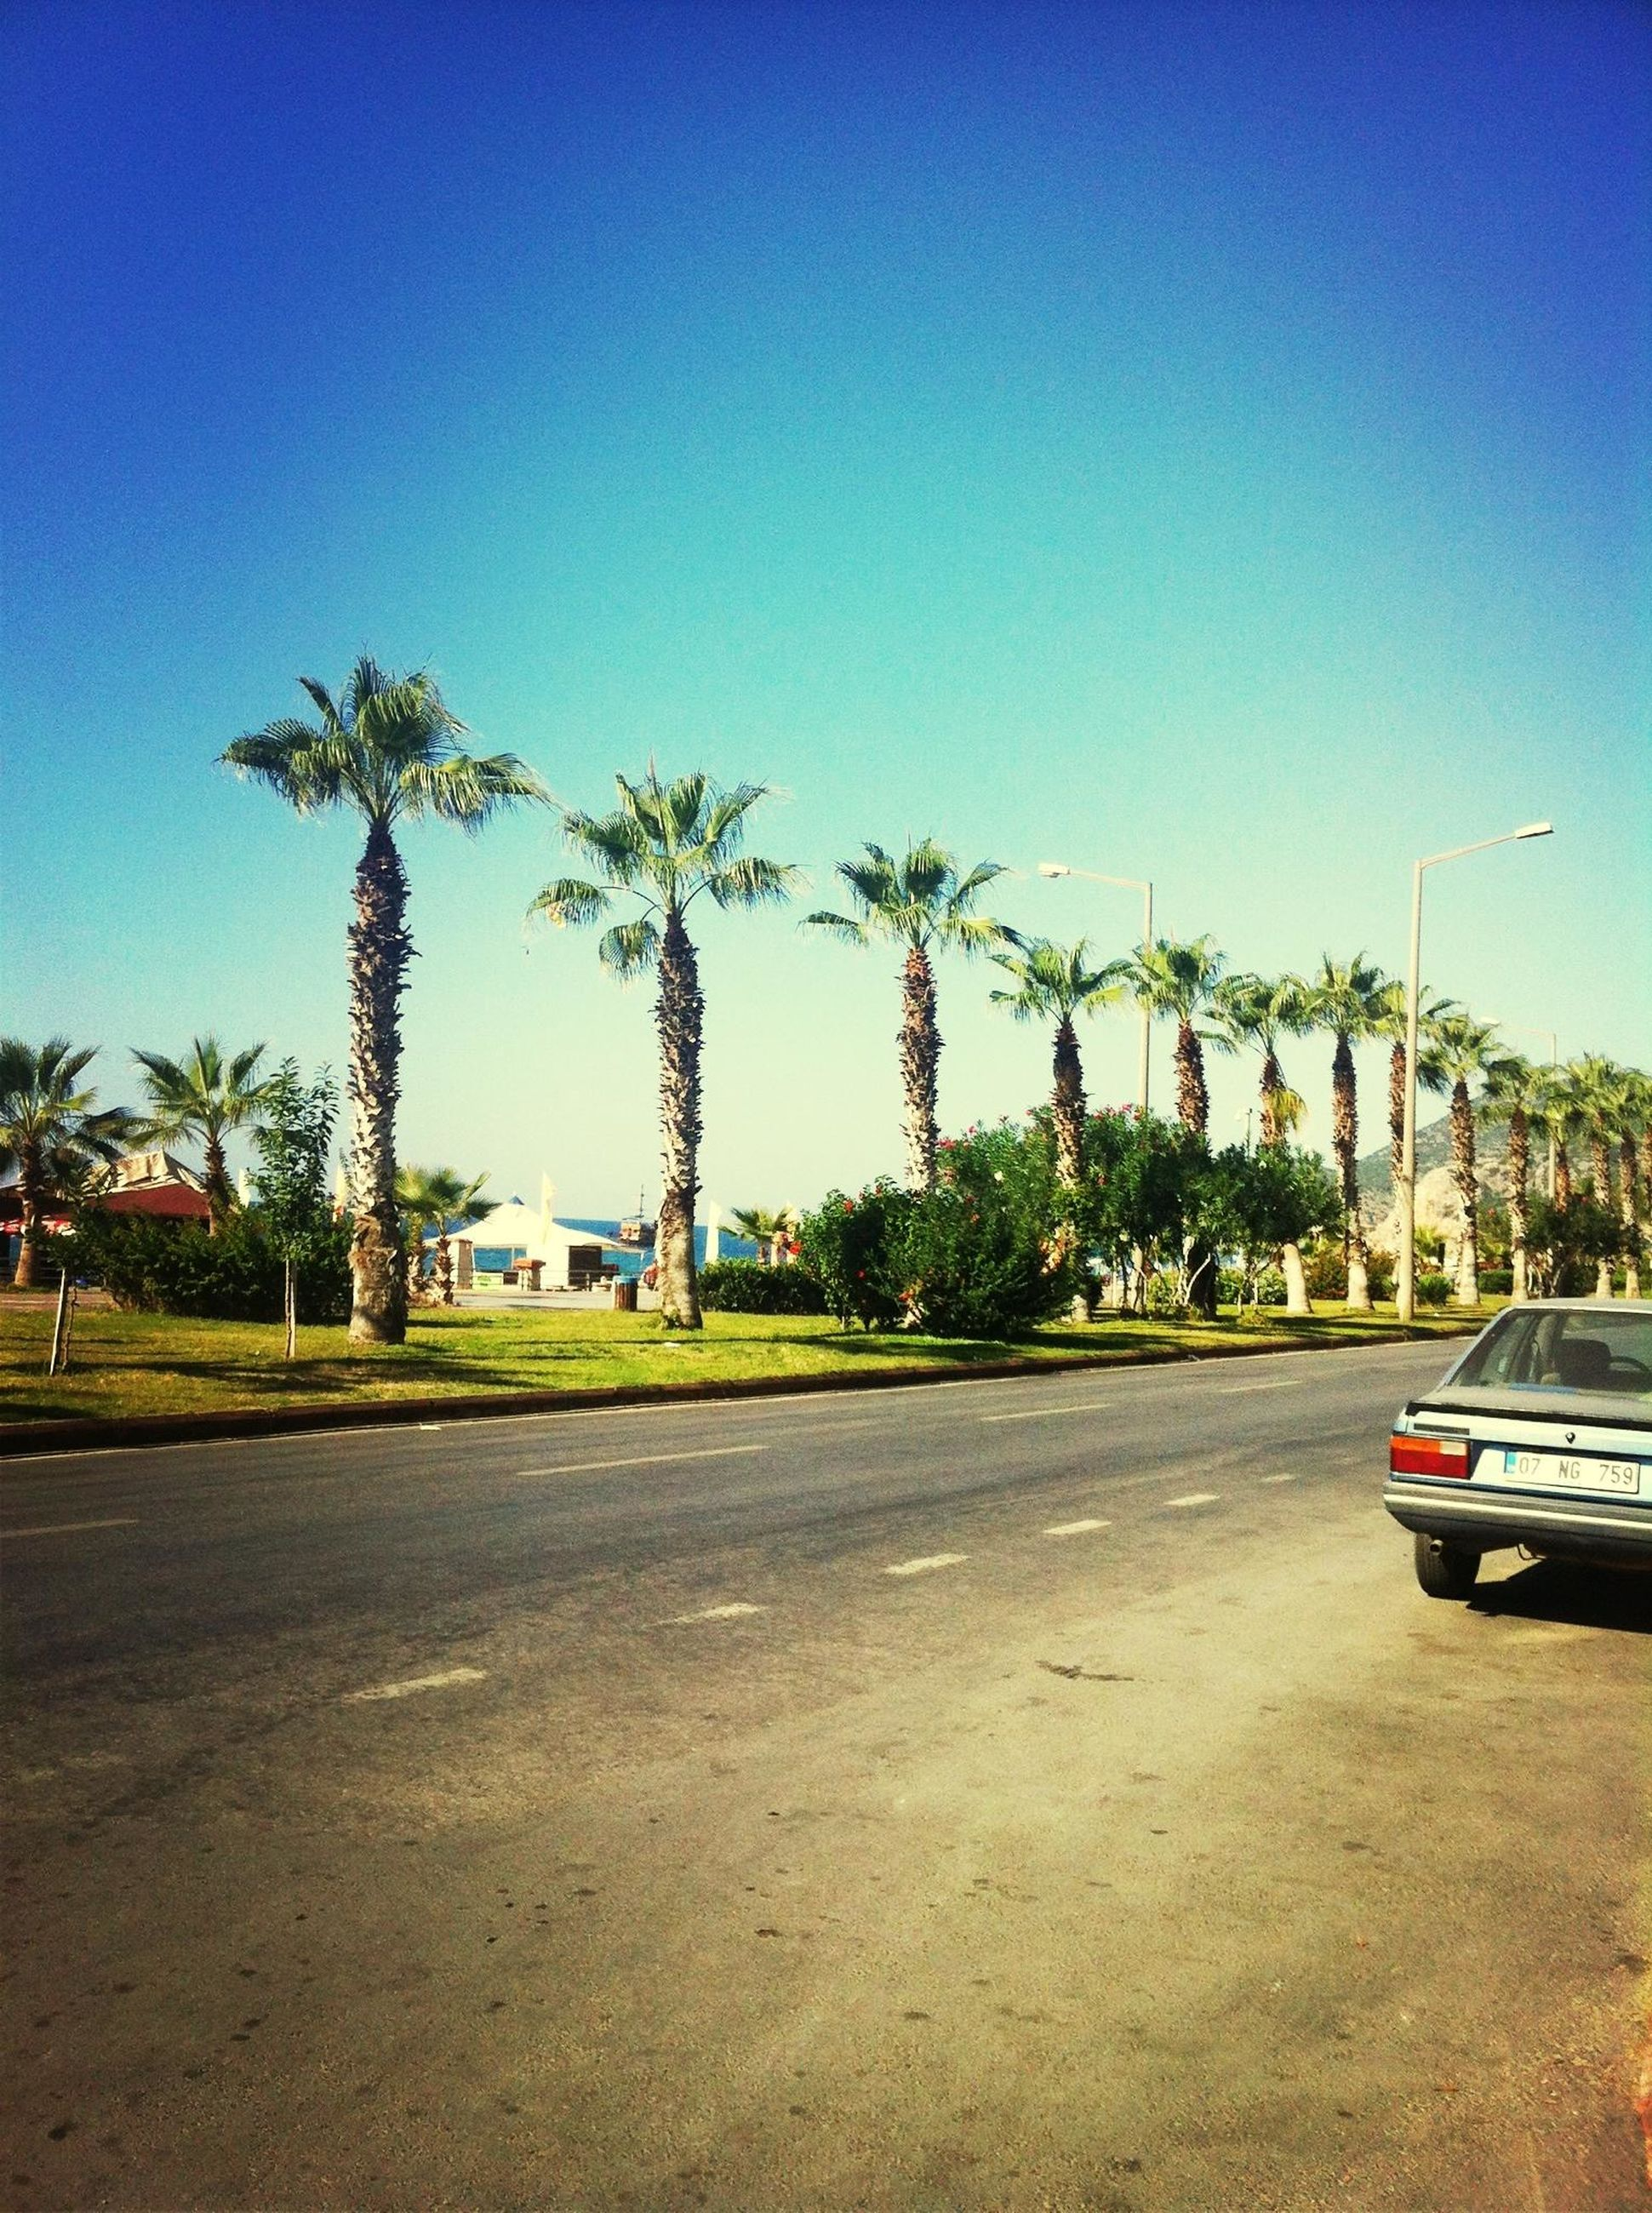 clear sky, blue, copy space, tree, transportation, car, palm tree, road, building exterior, land vehicle, street, mode of transport, architecture, built structure, sunlight, outdoors, day, sky, incidental people, no people